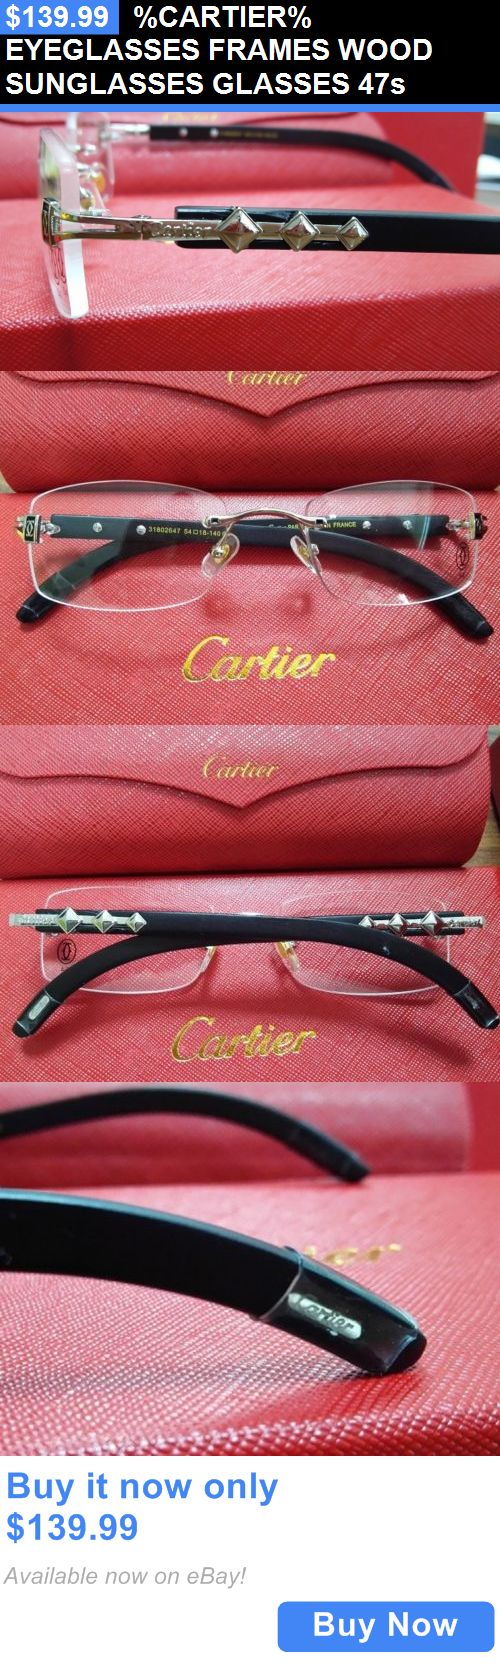 What are some retailers of Cartier titanium rimless frames?